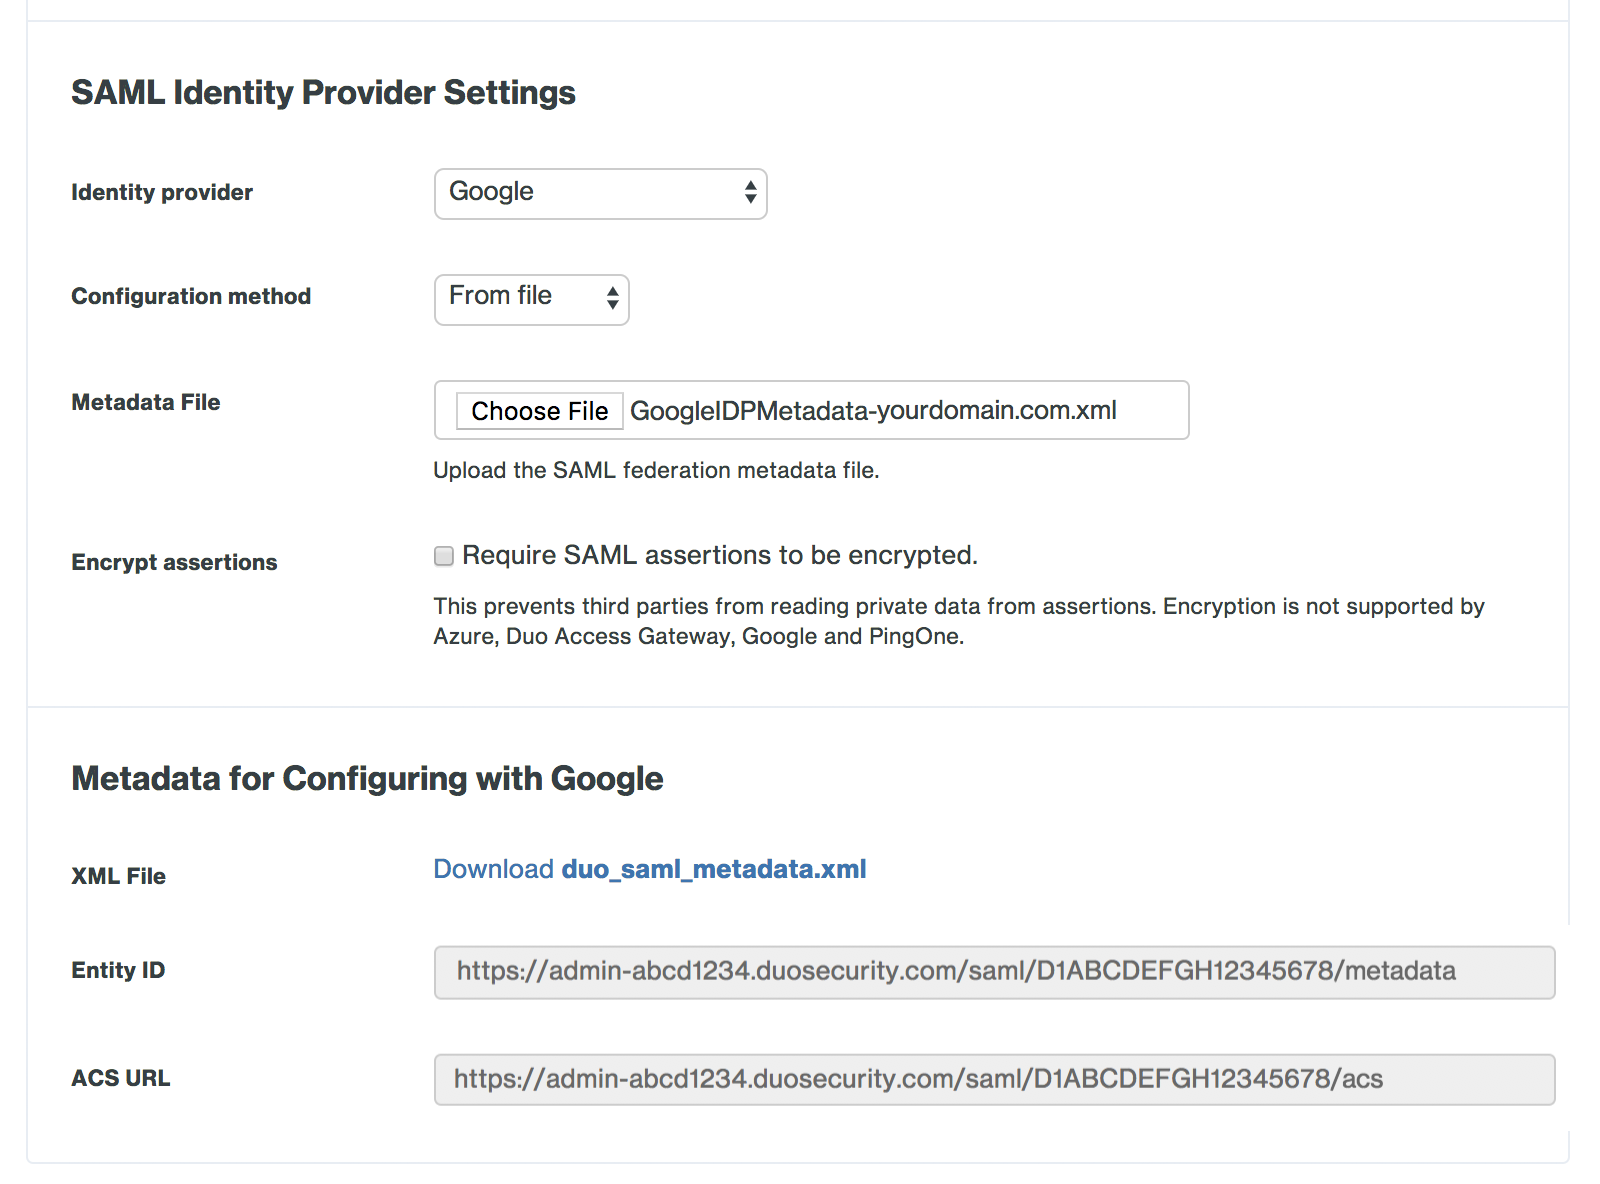 Duo Admin Panel Google SAML Identity Provider Settings